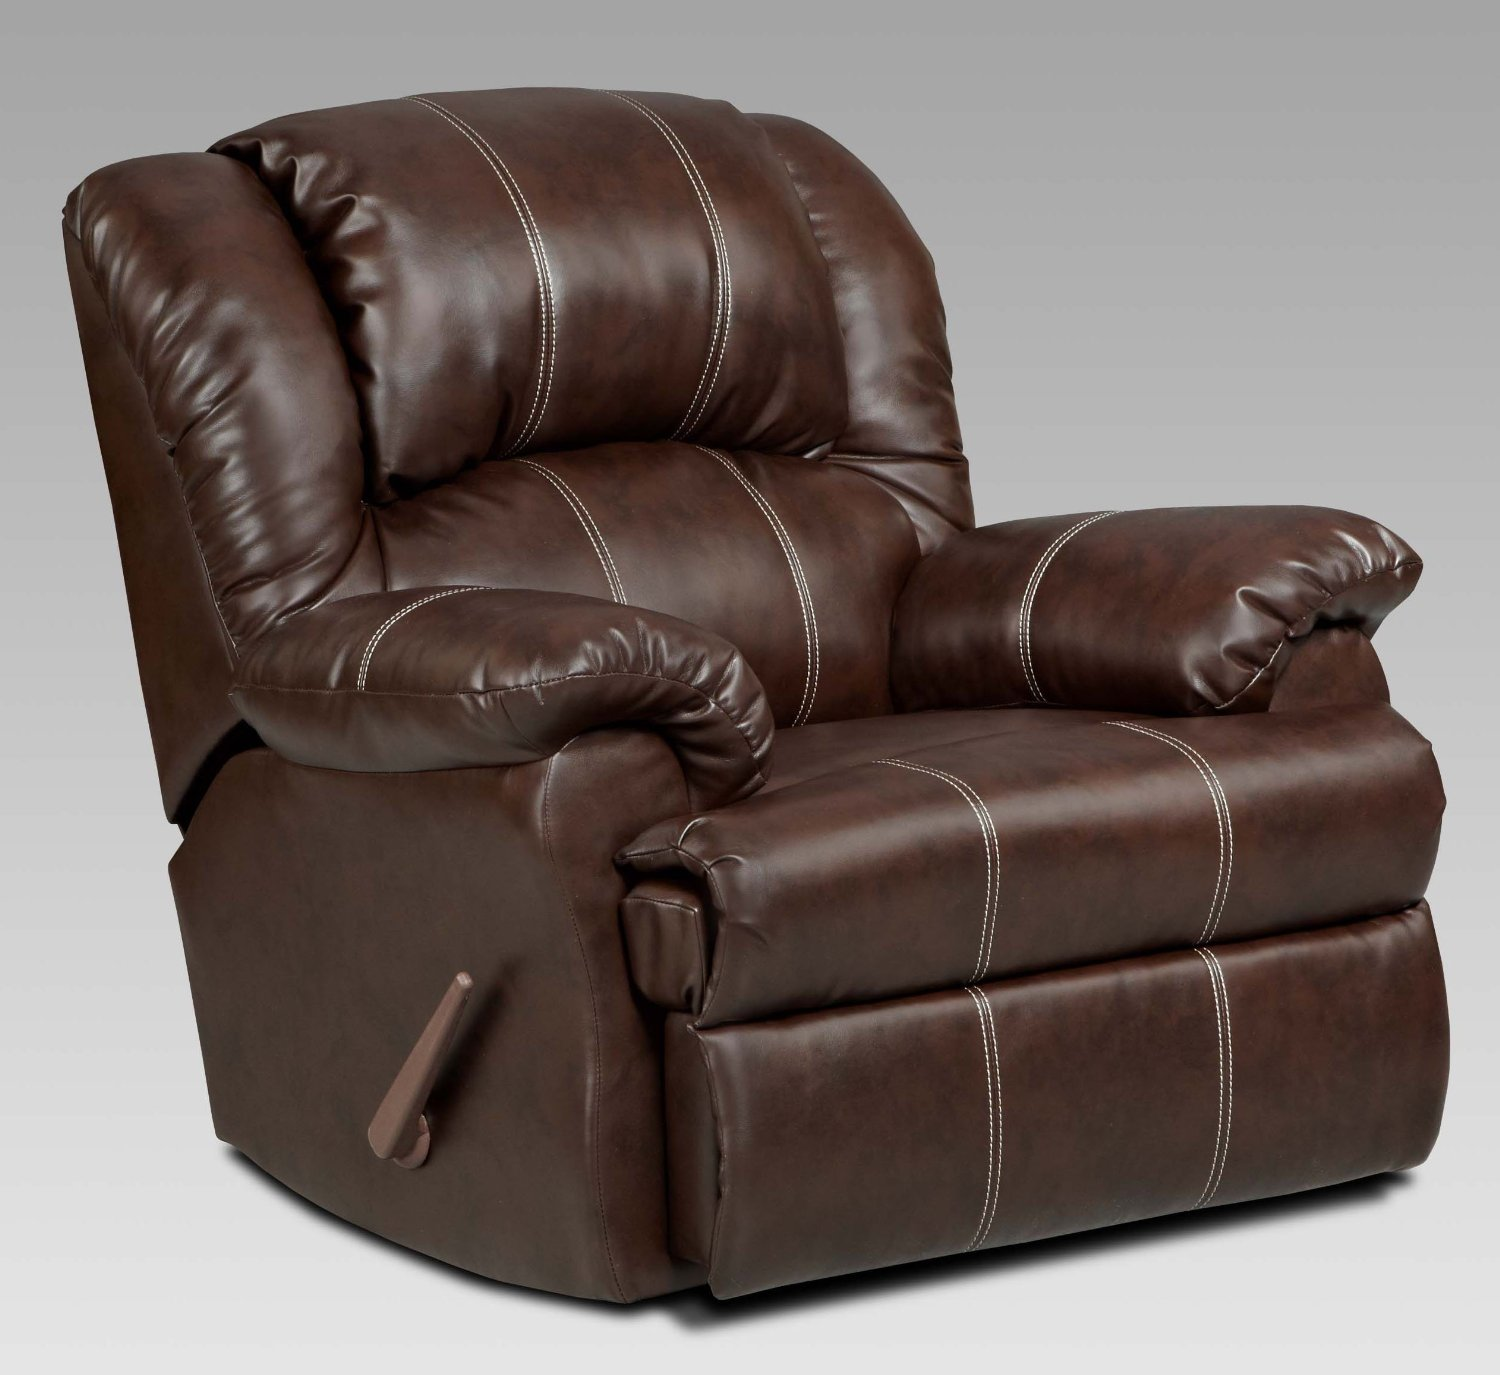 Roundhill Furniture Brandan Bonded Leather Dual Rocker Recliner Chair : best leather recliner chairs - islam-shia.org